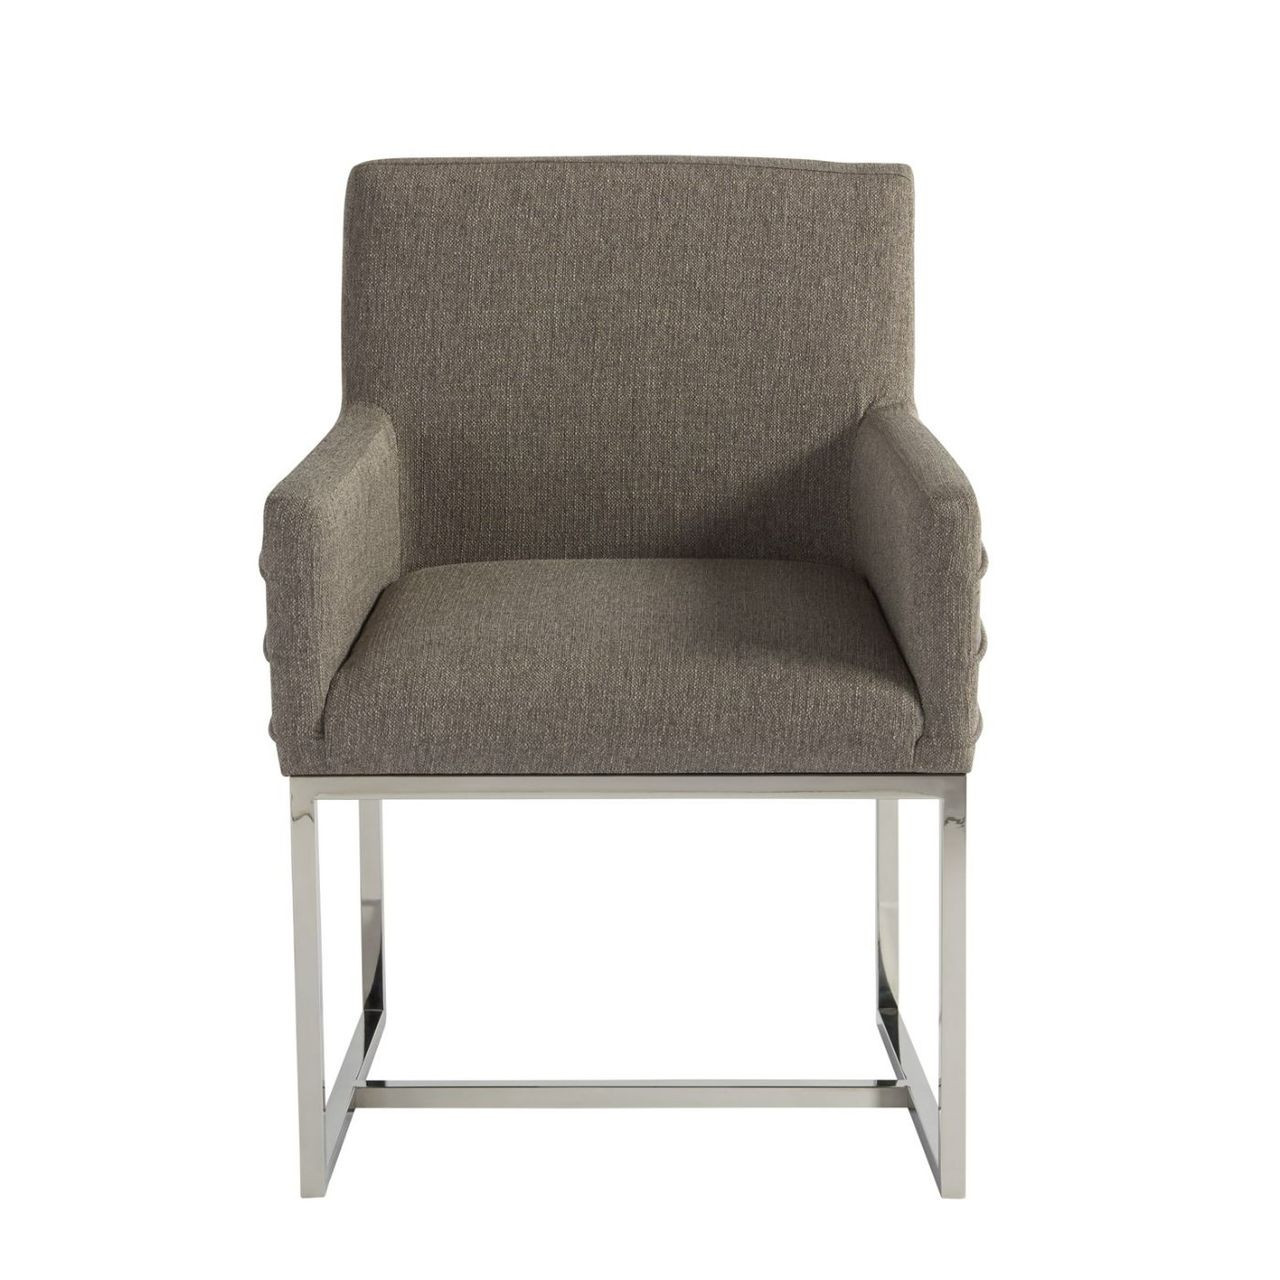 Upholstered Arm Chairs Coastal Zephyr Grey Chrome Leg Upholstered Arm Chair